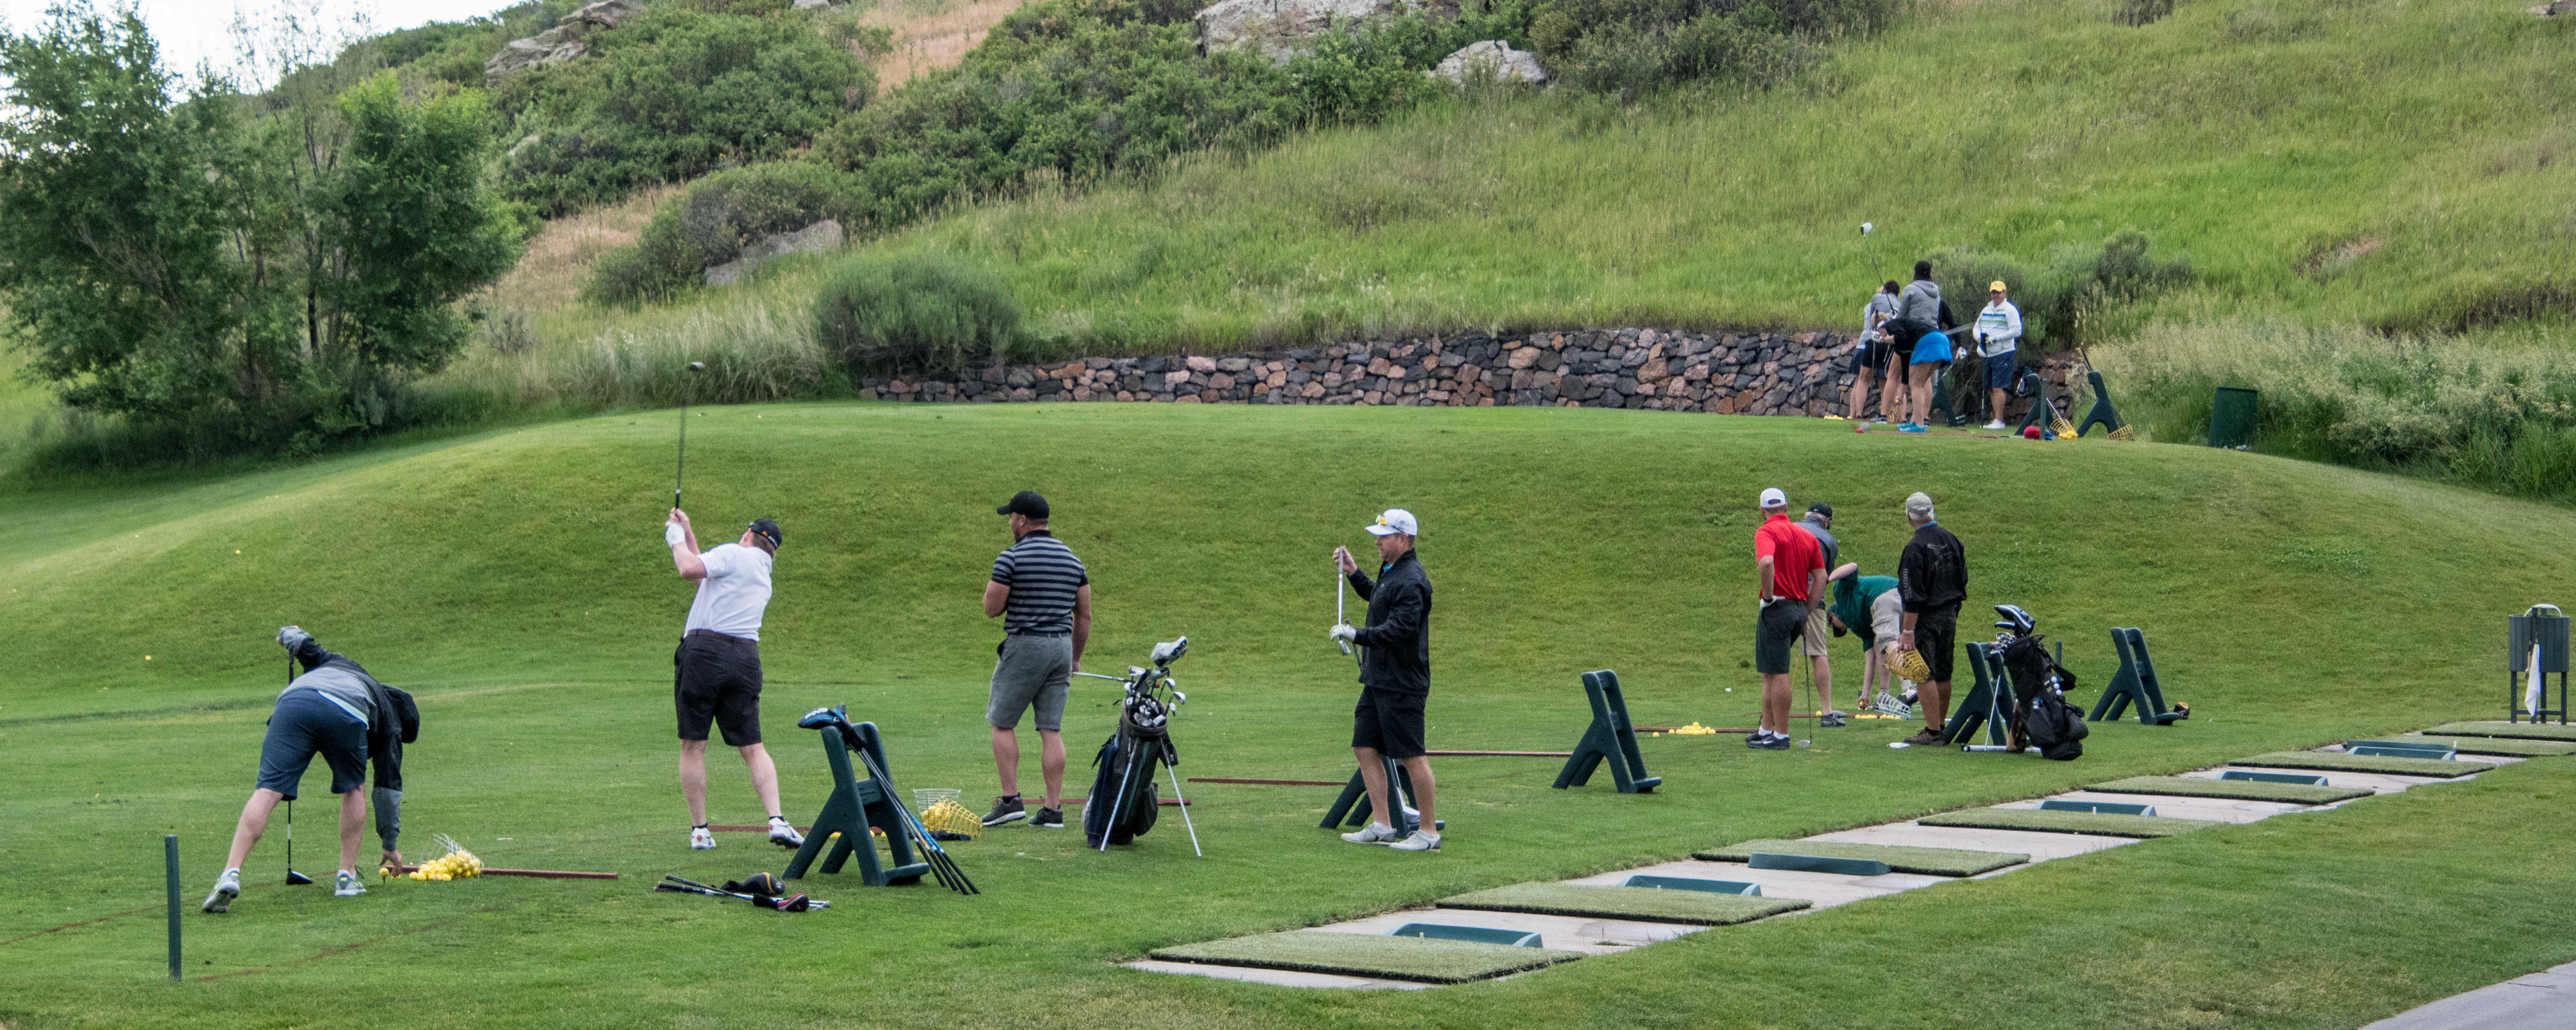 20180622LCCGolf DSC_5099untitled